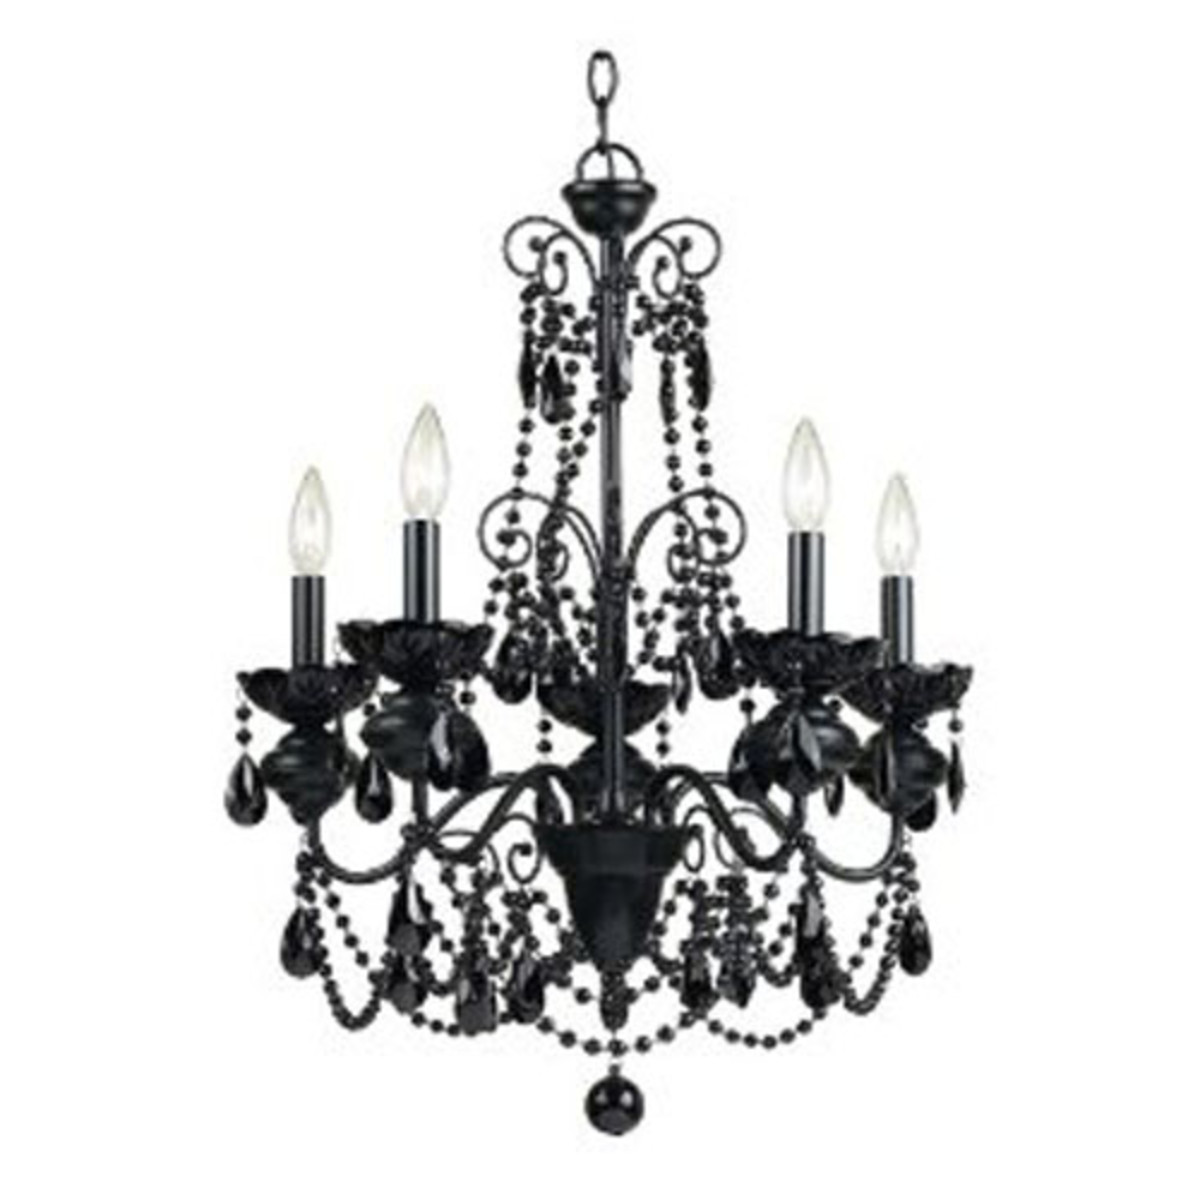 10 Chandeliers For Your Little Princess, Chandeliers For Girl Bedrooms